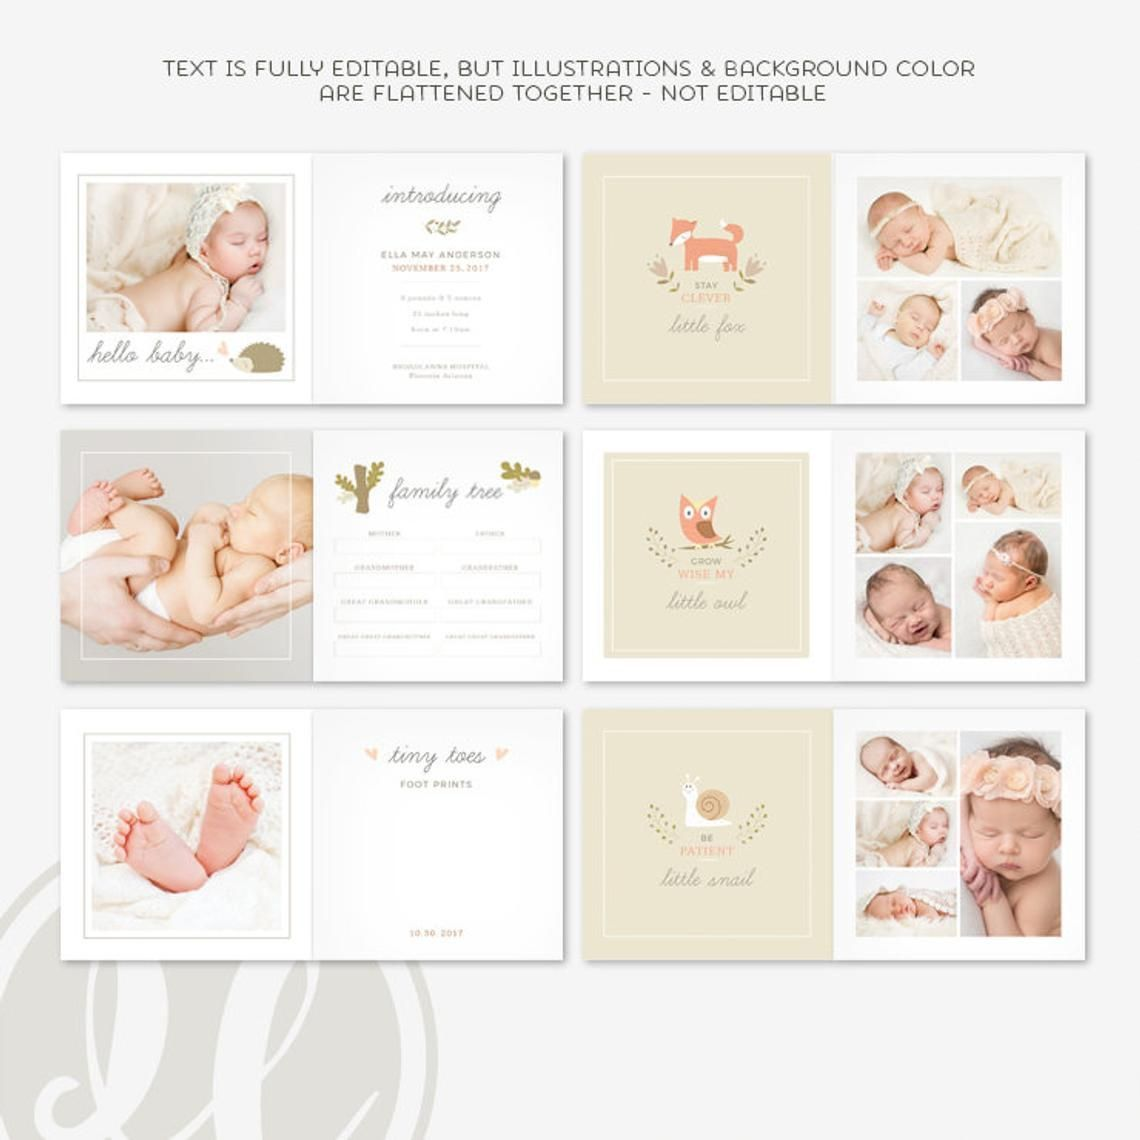 010 Unbelievable Family Tree For Baby Book Template High Definition  PrintableFull